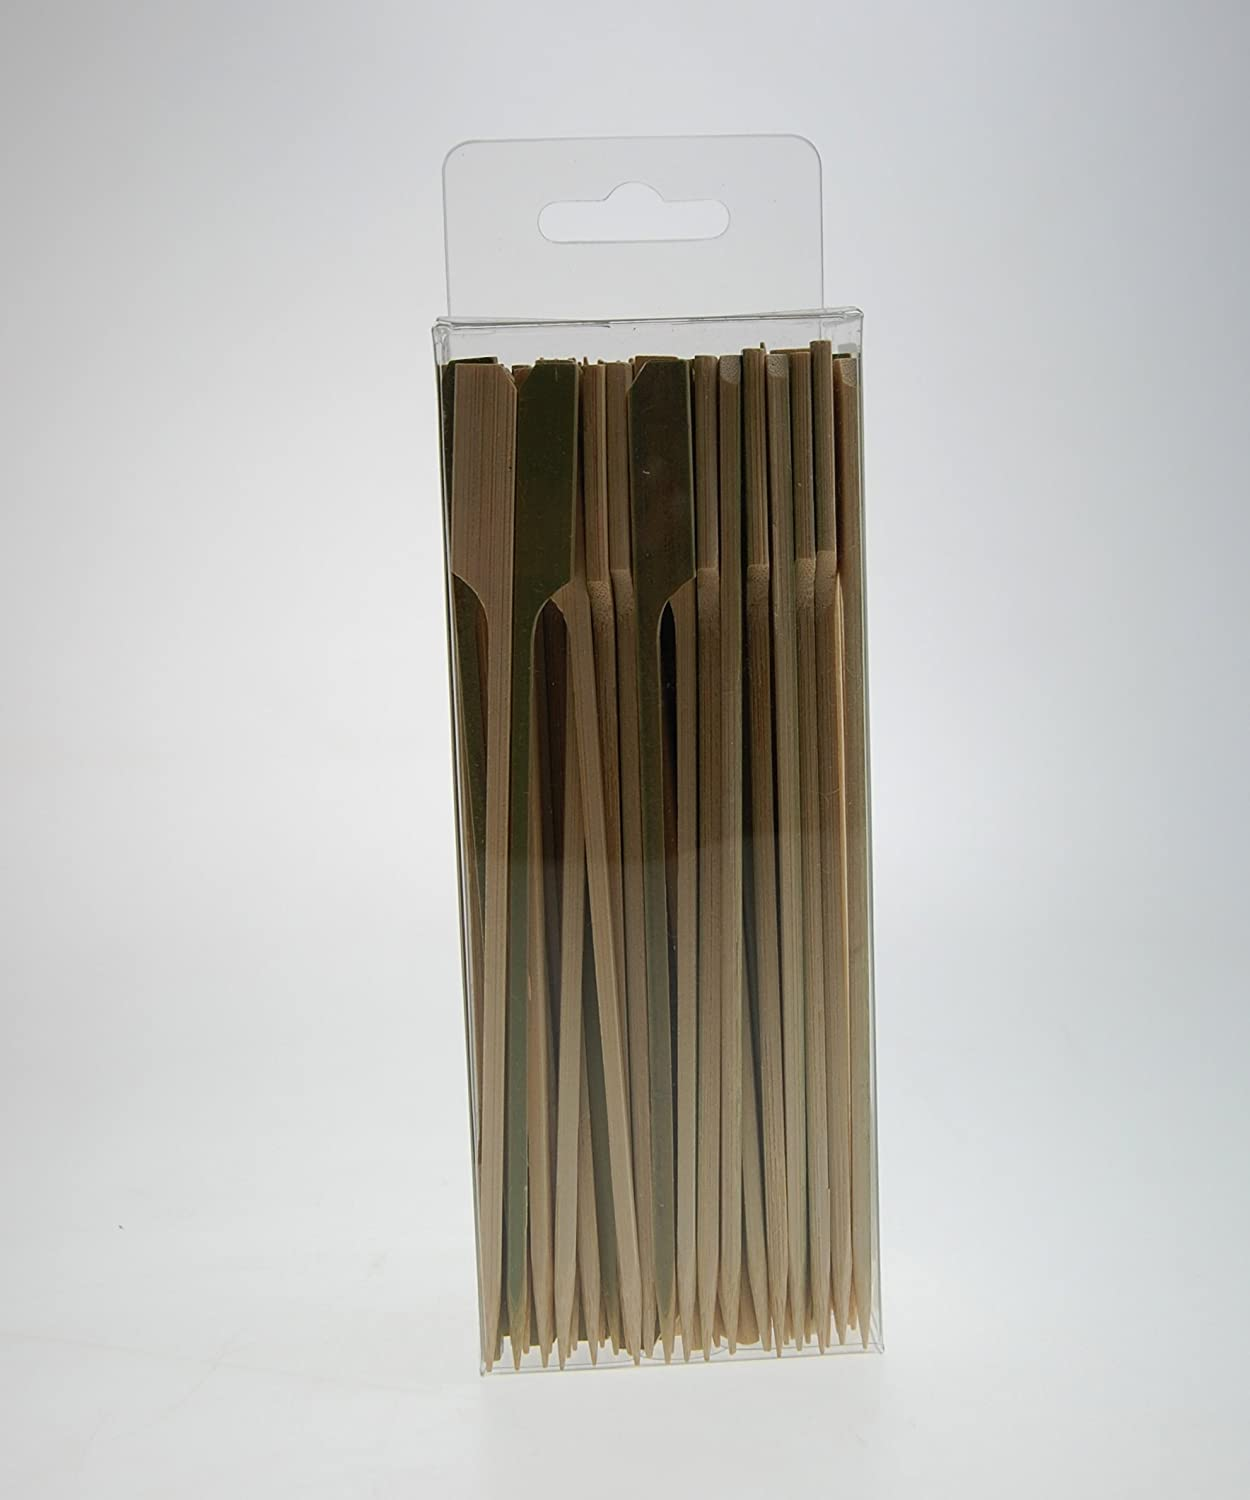 15cm Paddle Bamboo Wooden Skewers x 100 B04